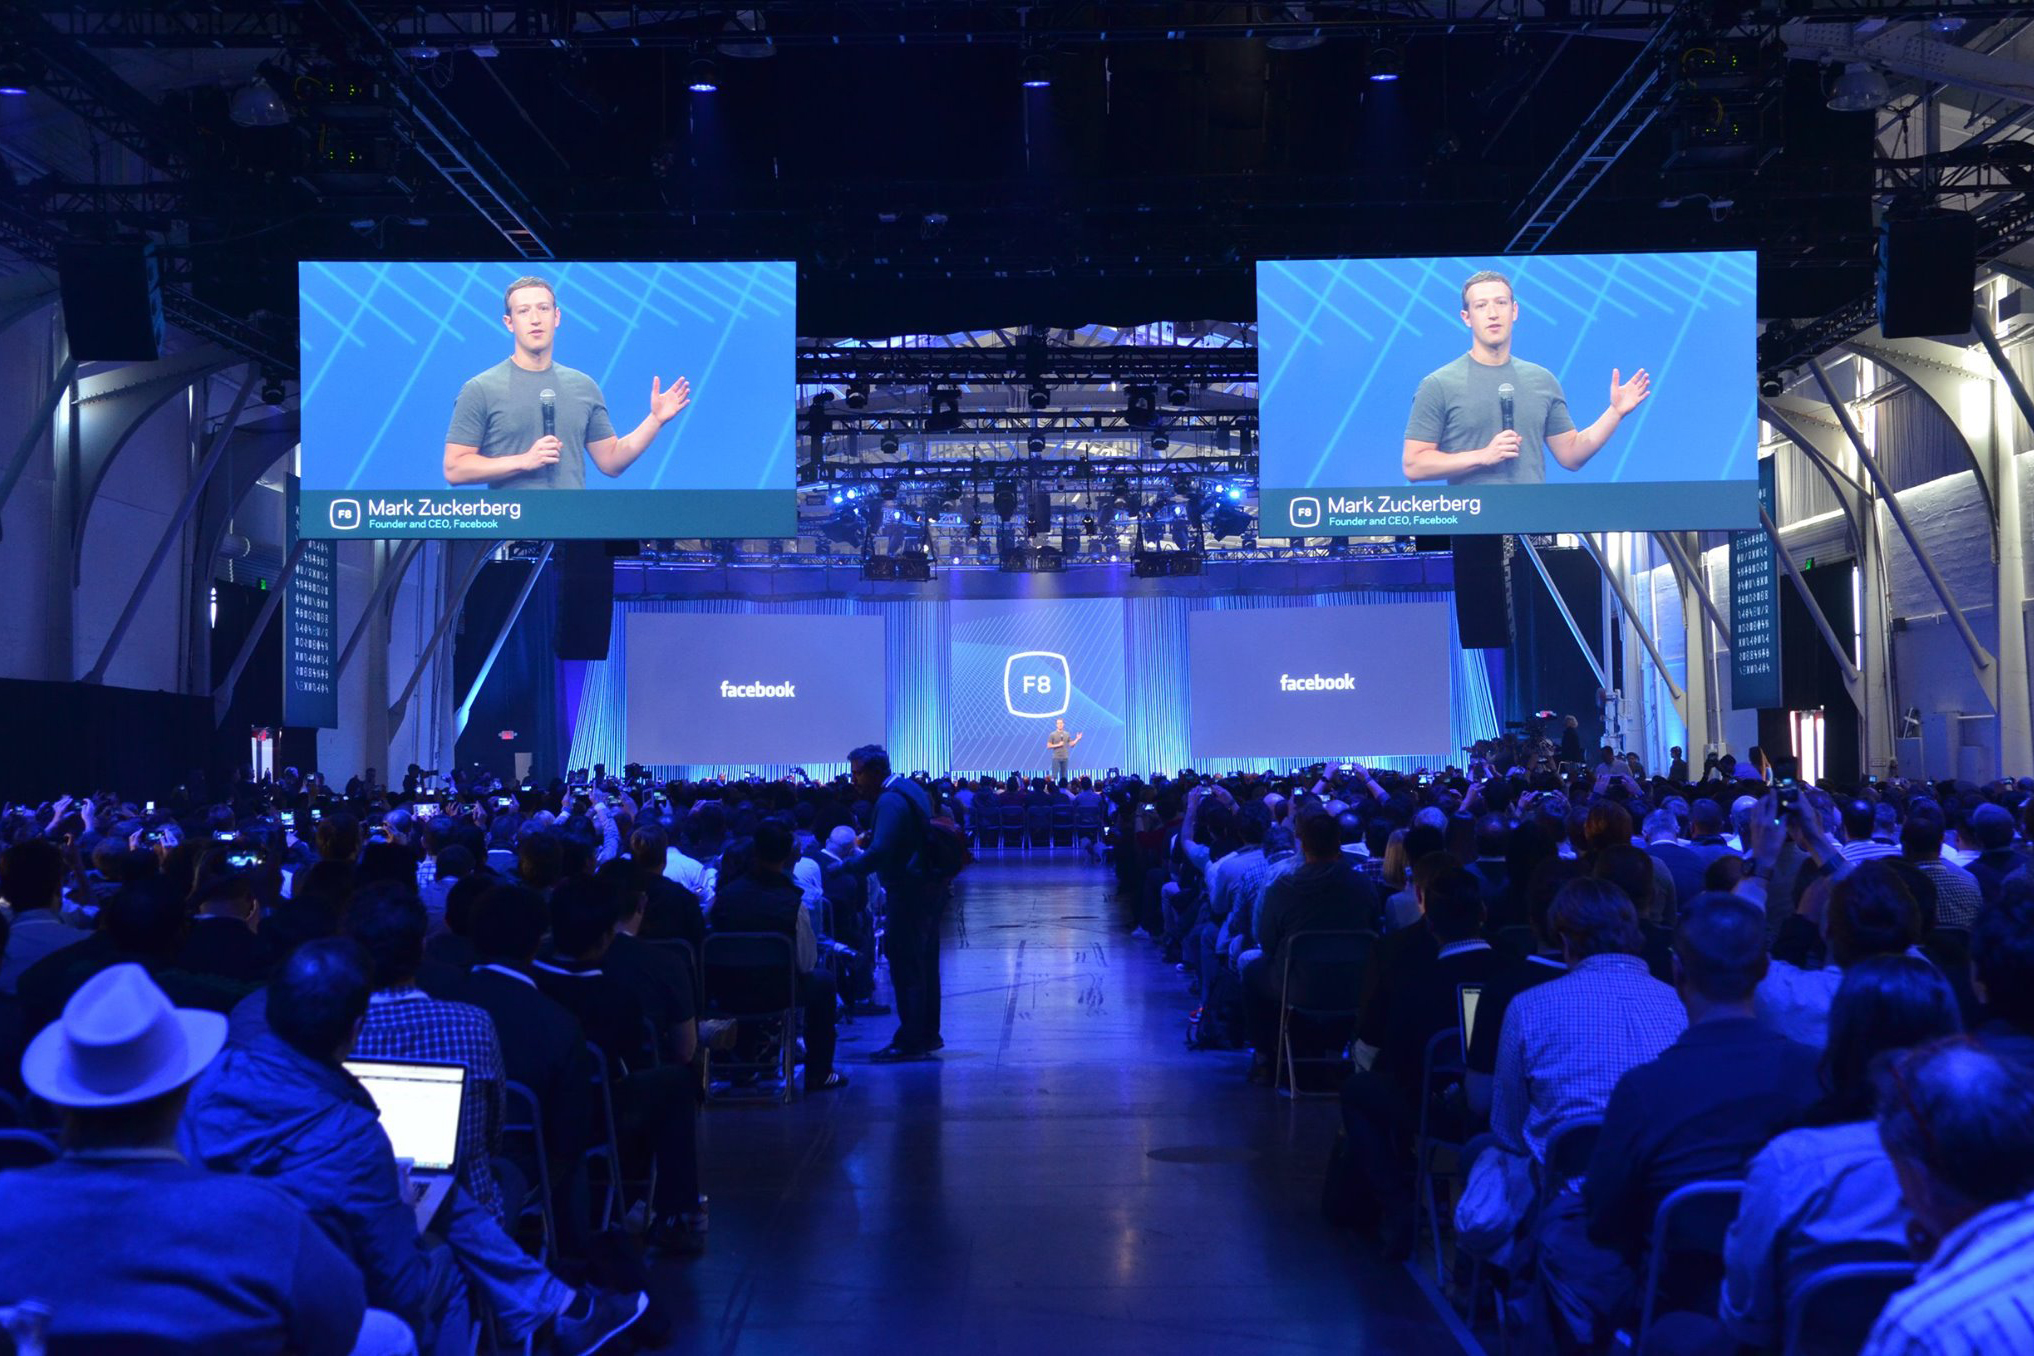 Facebook cancels F8 developer conference amid coronavirus threat